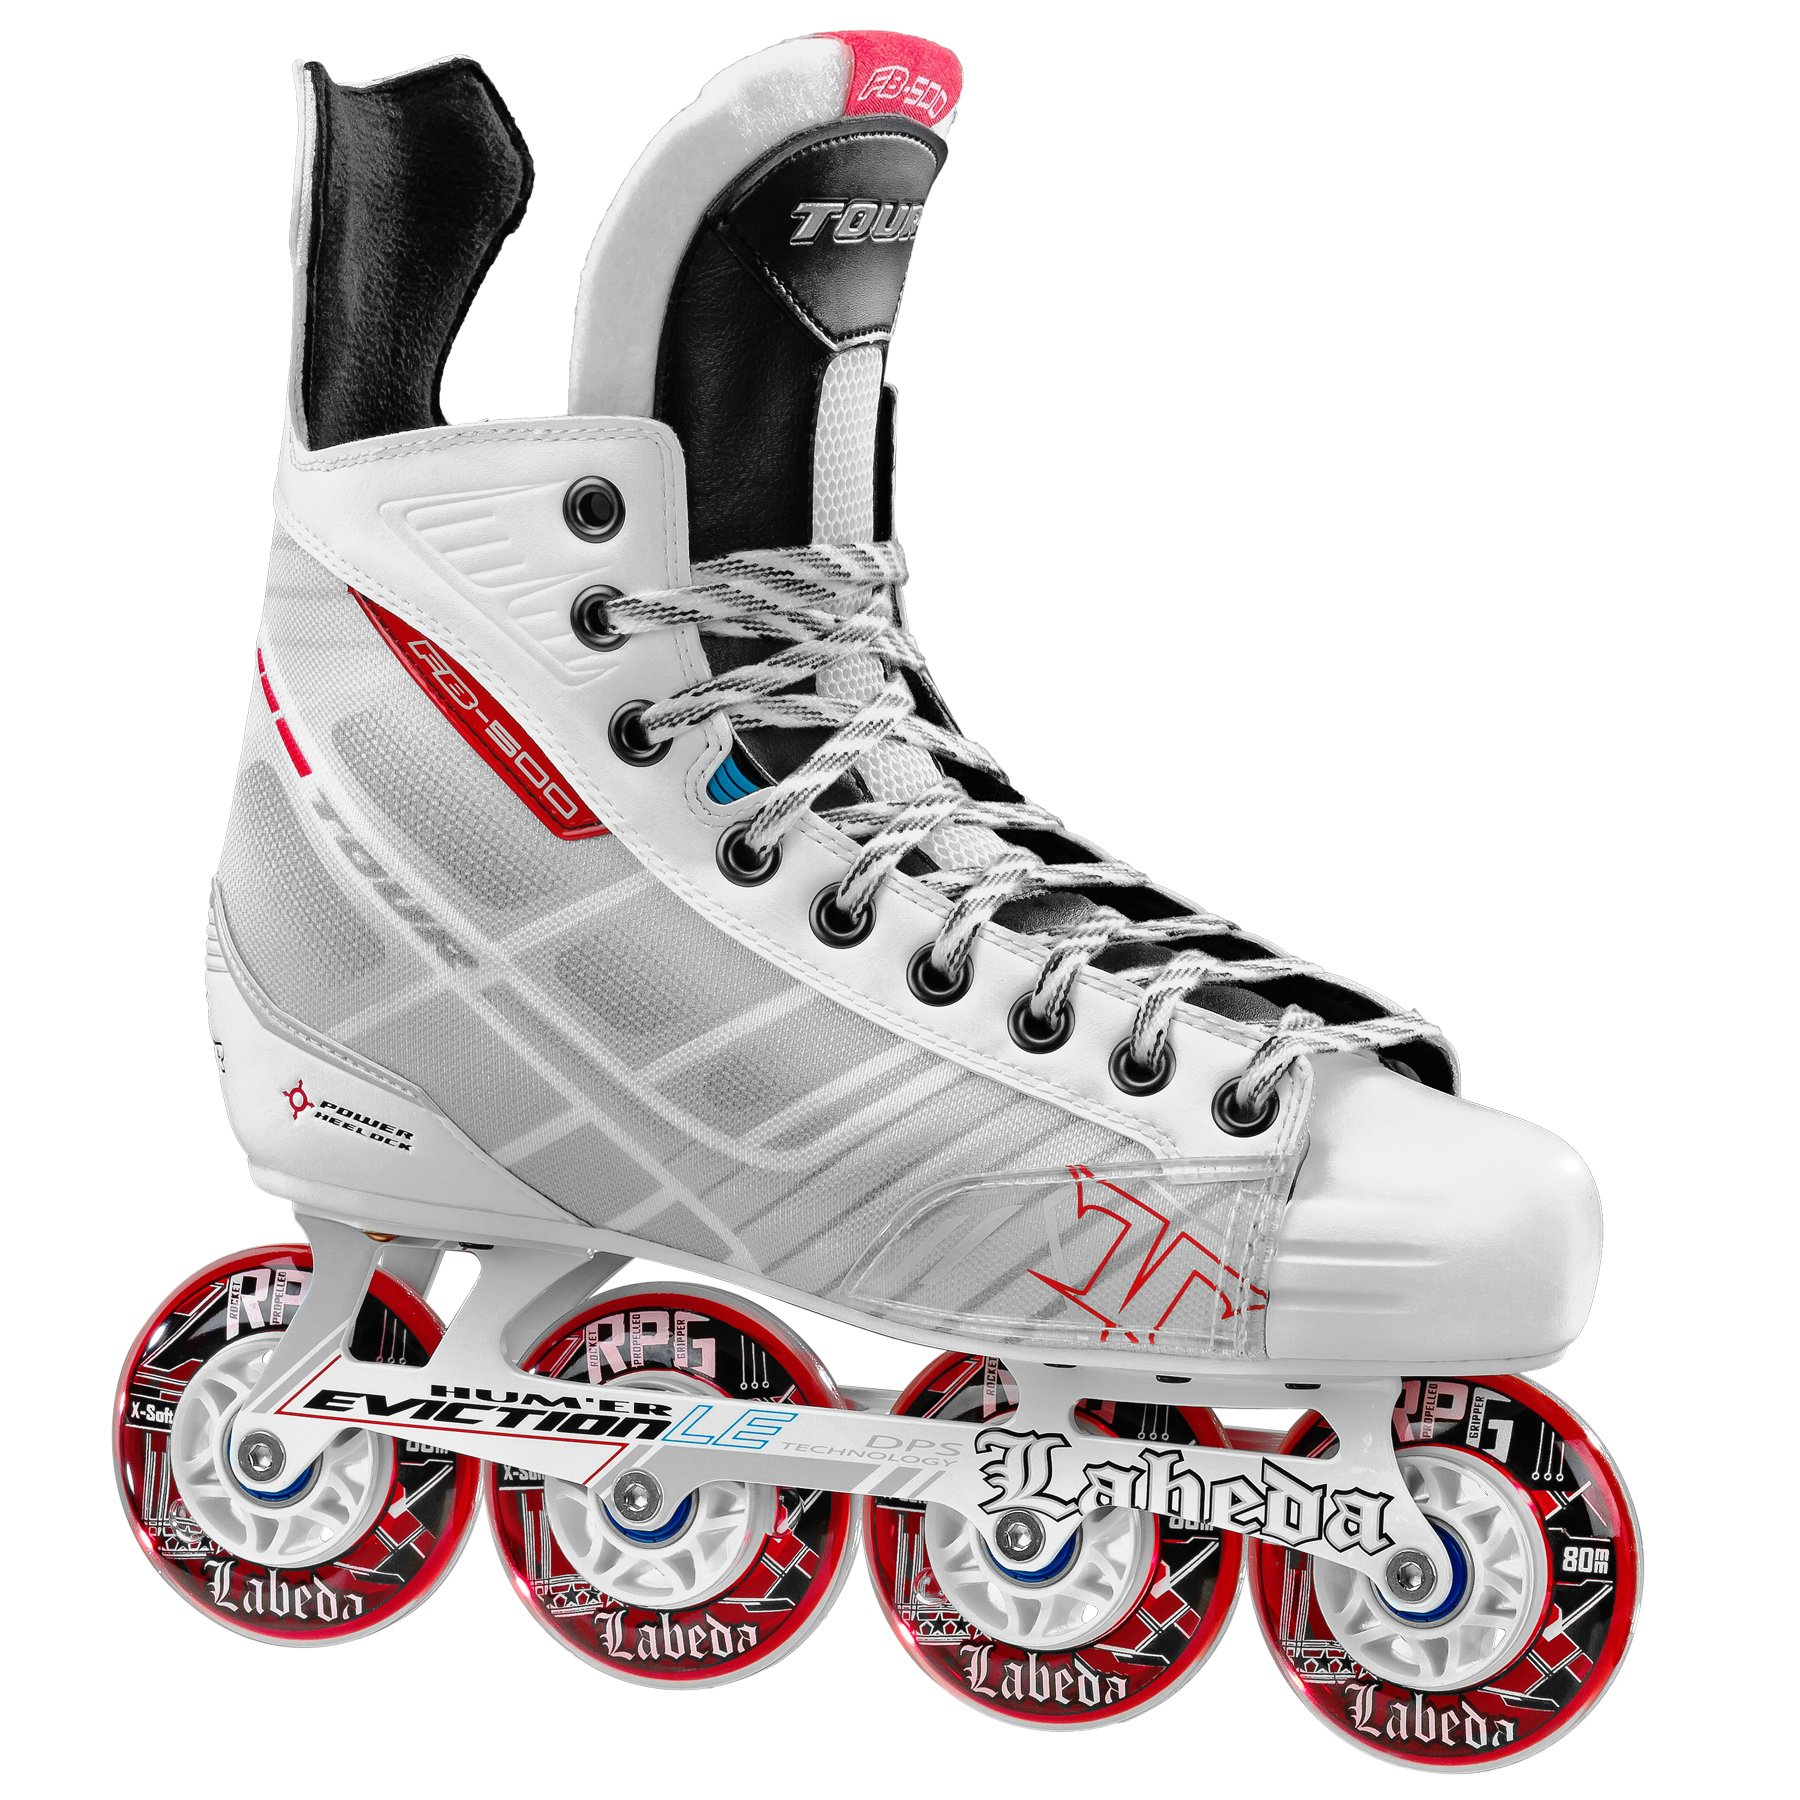 Tour Hockey BoneLite 500 Inline Hockey Skate, White, 3 by Tour Hockey